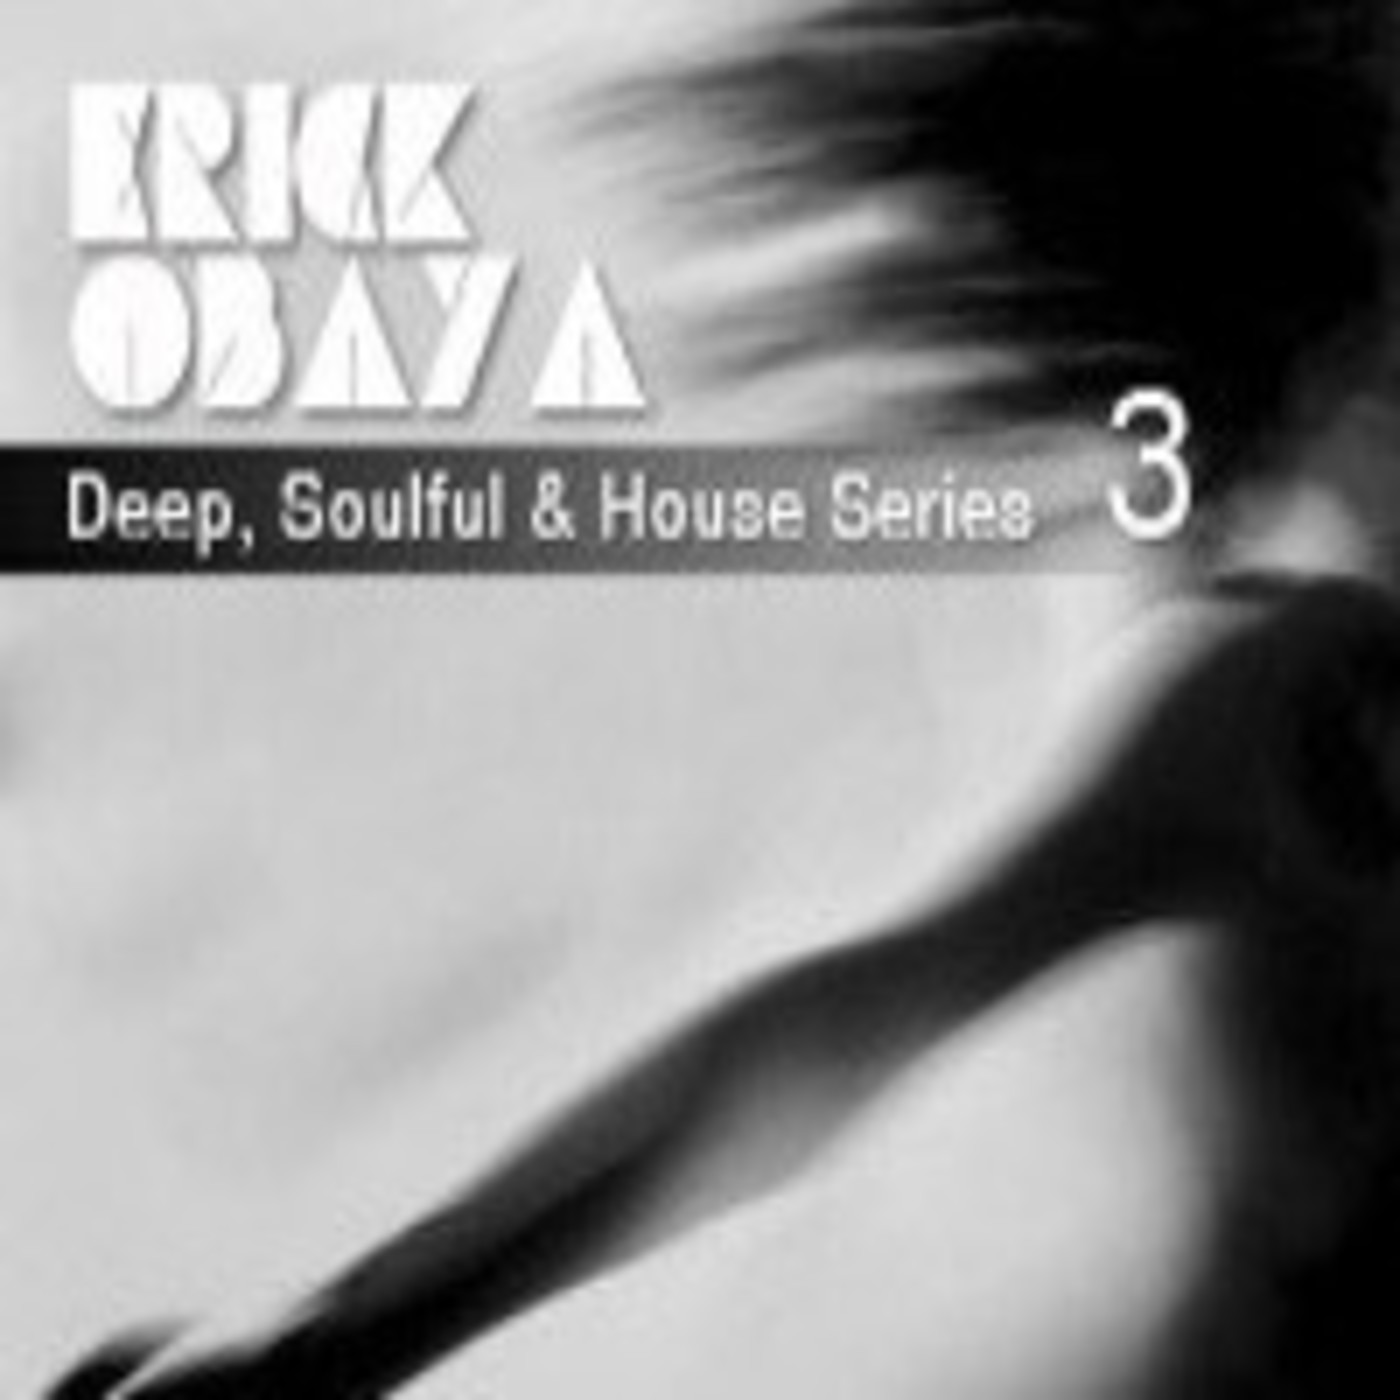 Deep, Soulful & House Series - Episode 3